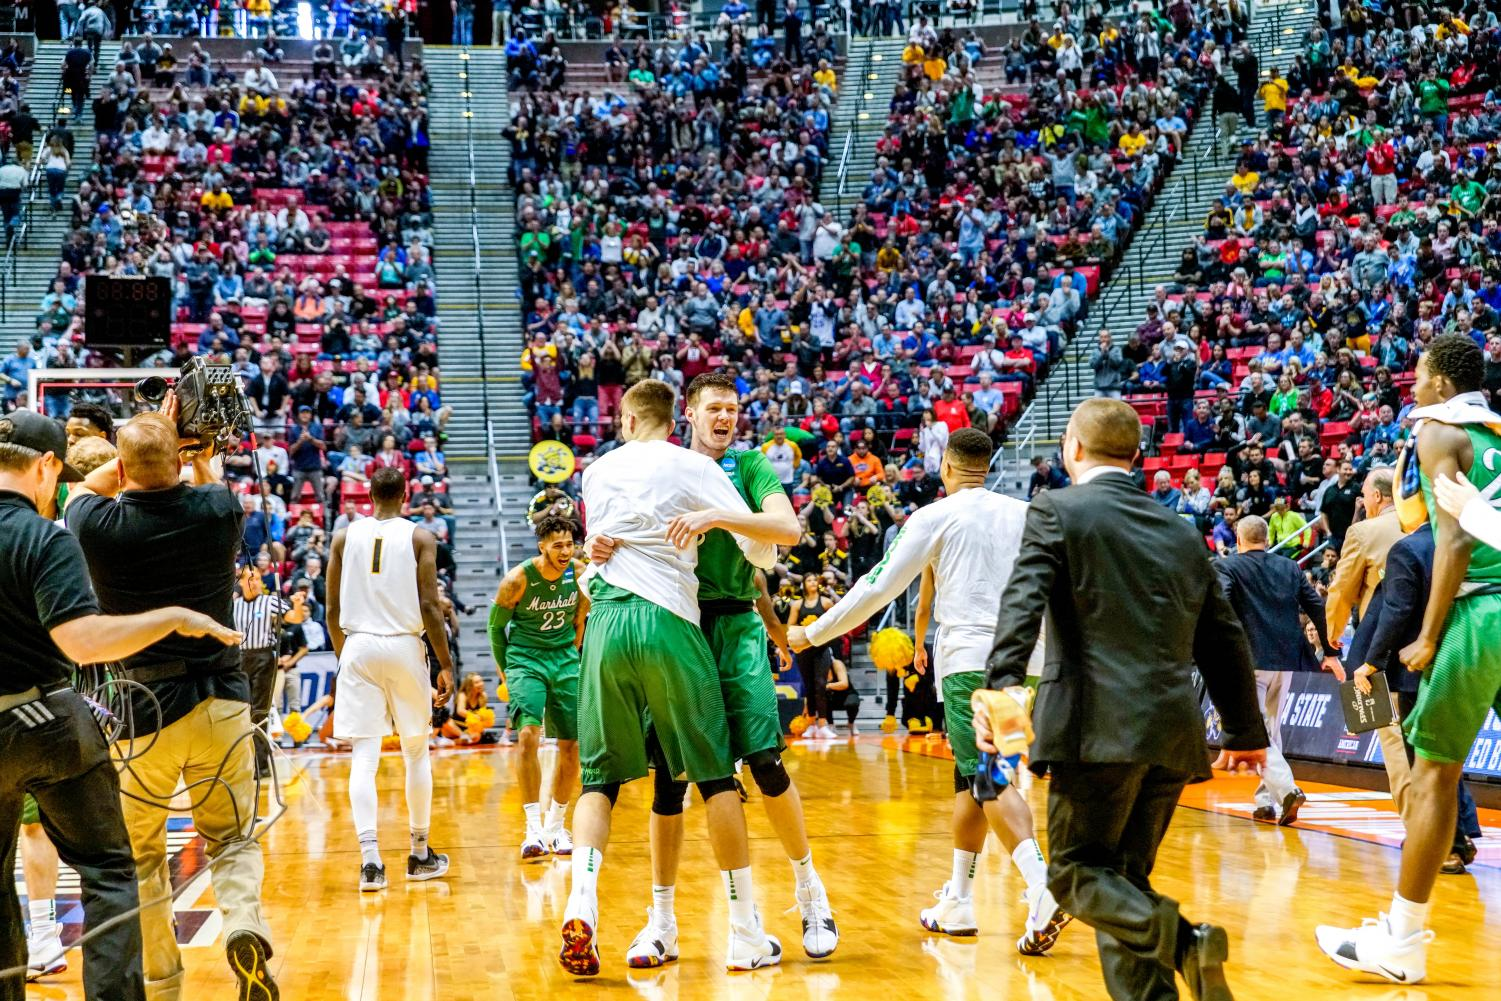 Junior+forward+Ajdin+Penava+and+redshirt+freshman+guard+Jannson+Williams+hug+in+celebration+as+the+game+clock+winds+down+for+a+Marshall+win.+